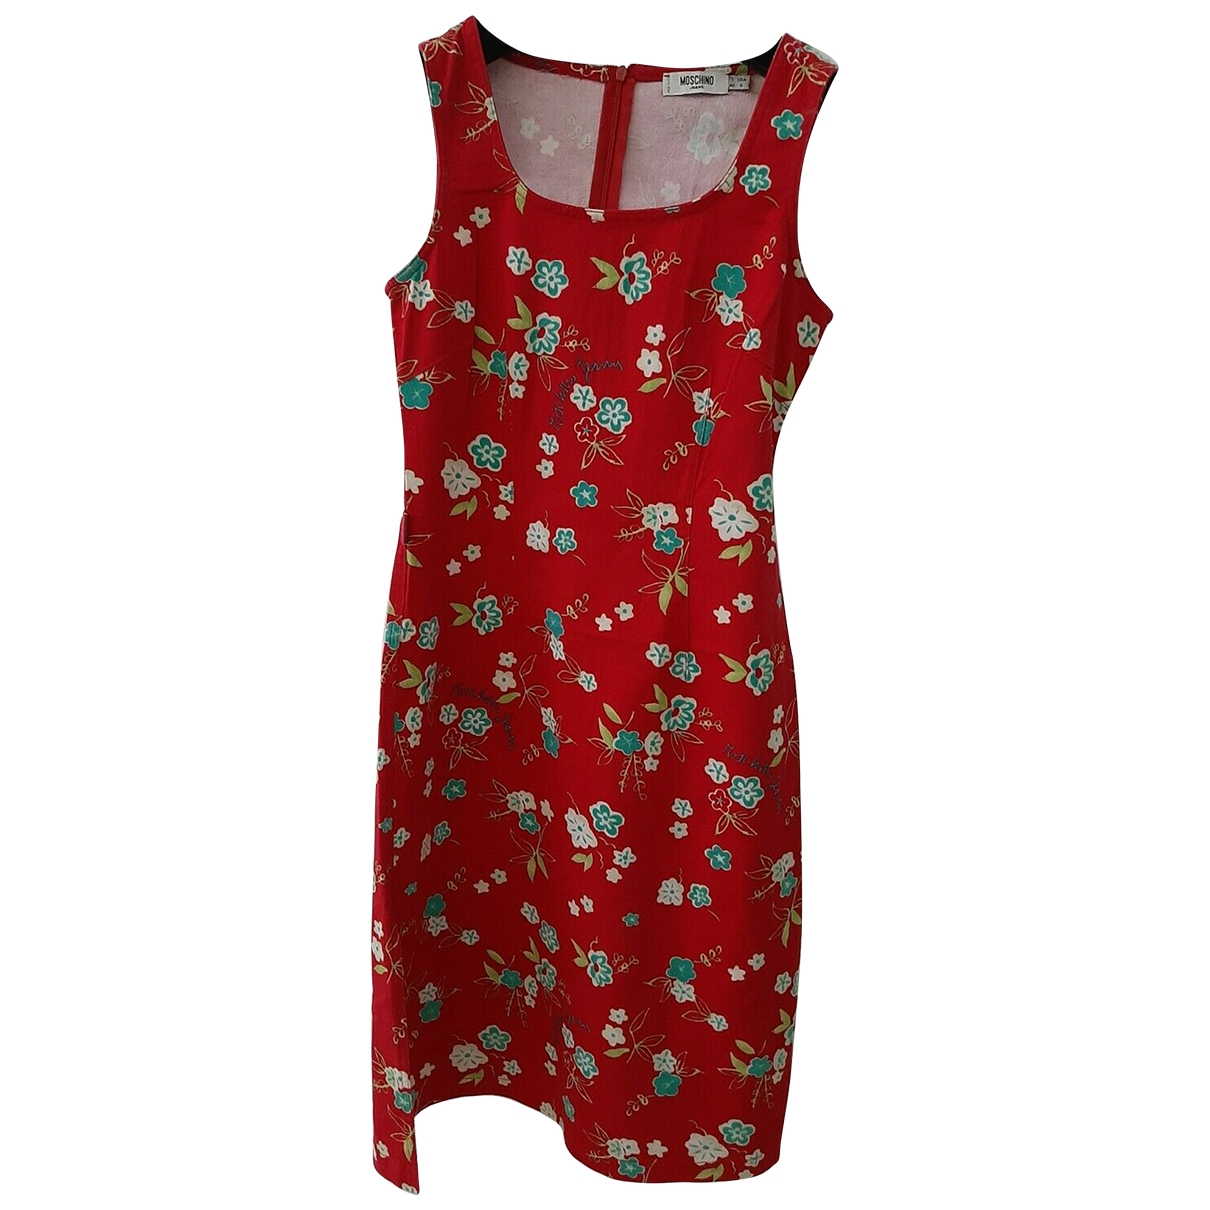 Moschino Cheap And Chic \N Red Cotton - elasthane dress for Women 40 IT